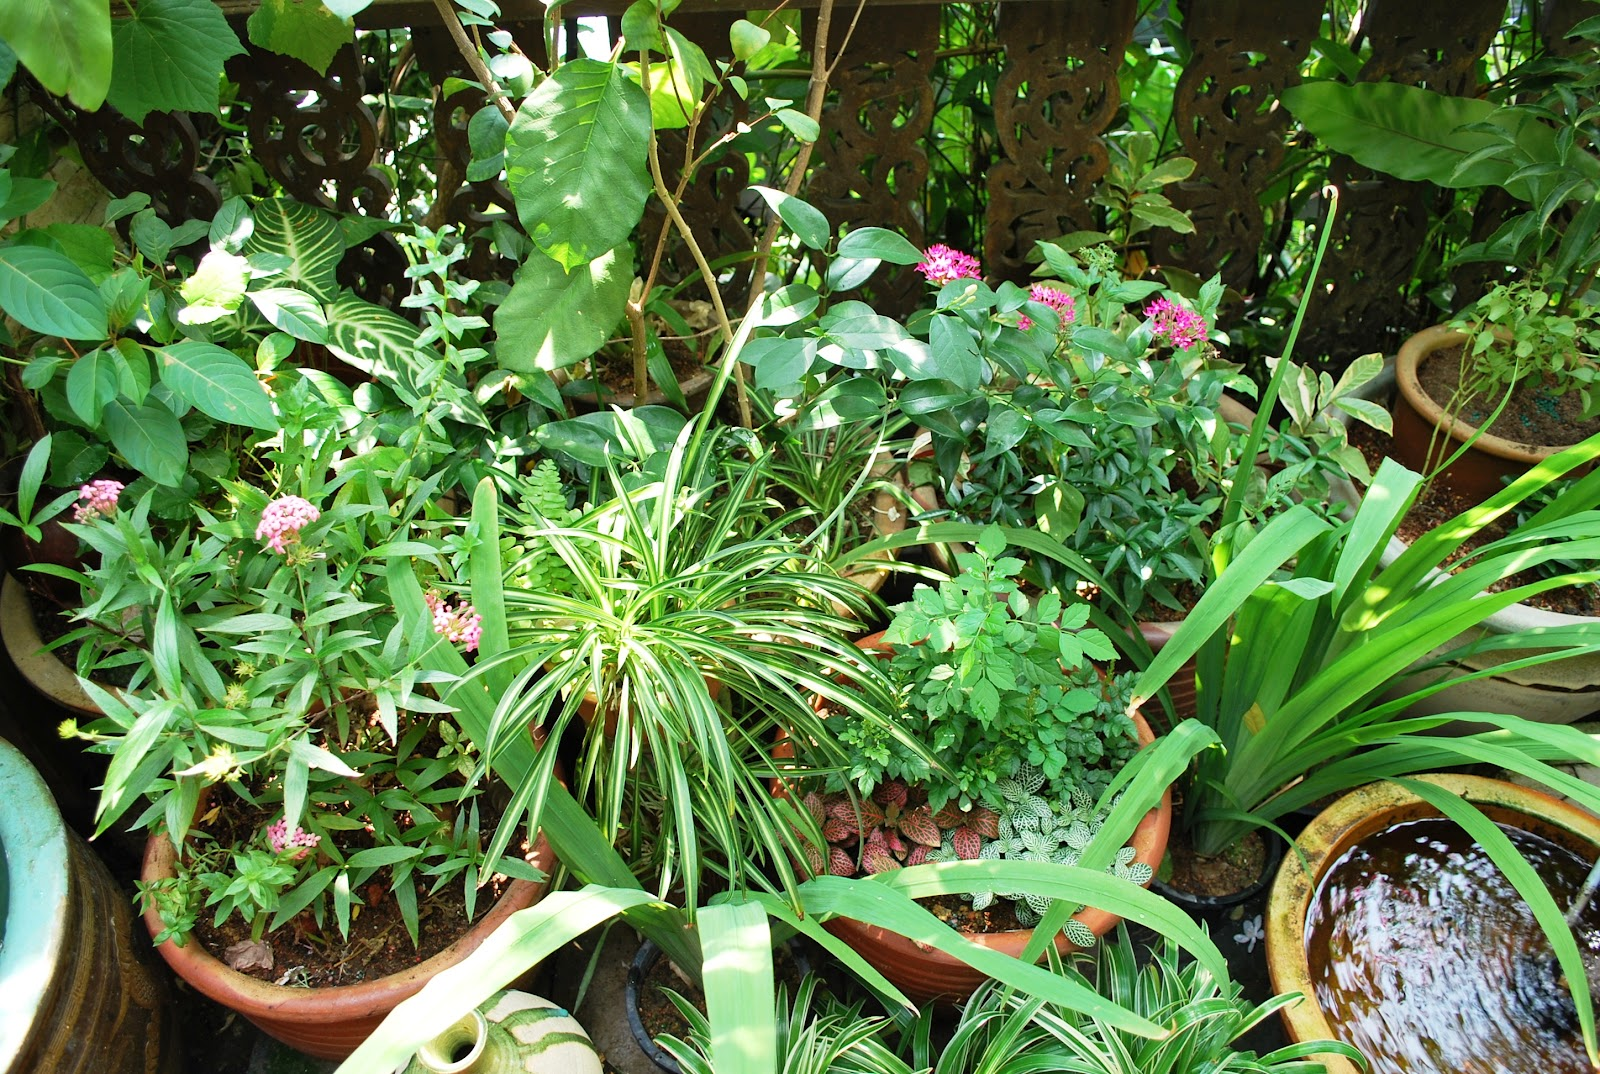 it has been hot and humid but with the greens from my little garden and the trickling water from the fountains - Little Garden